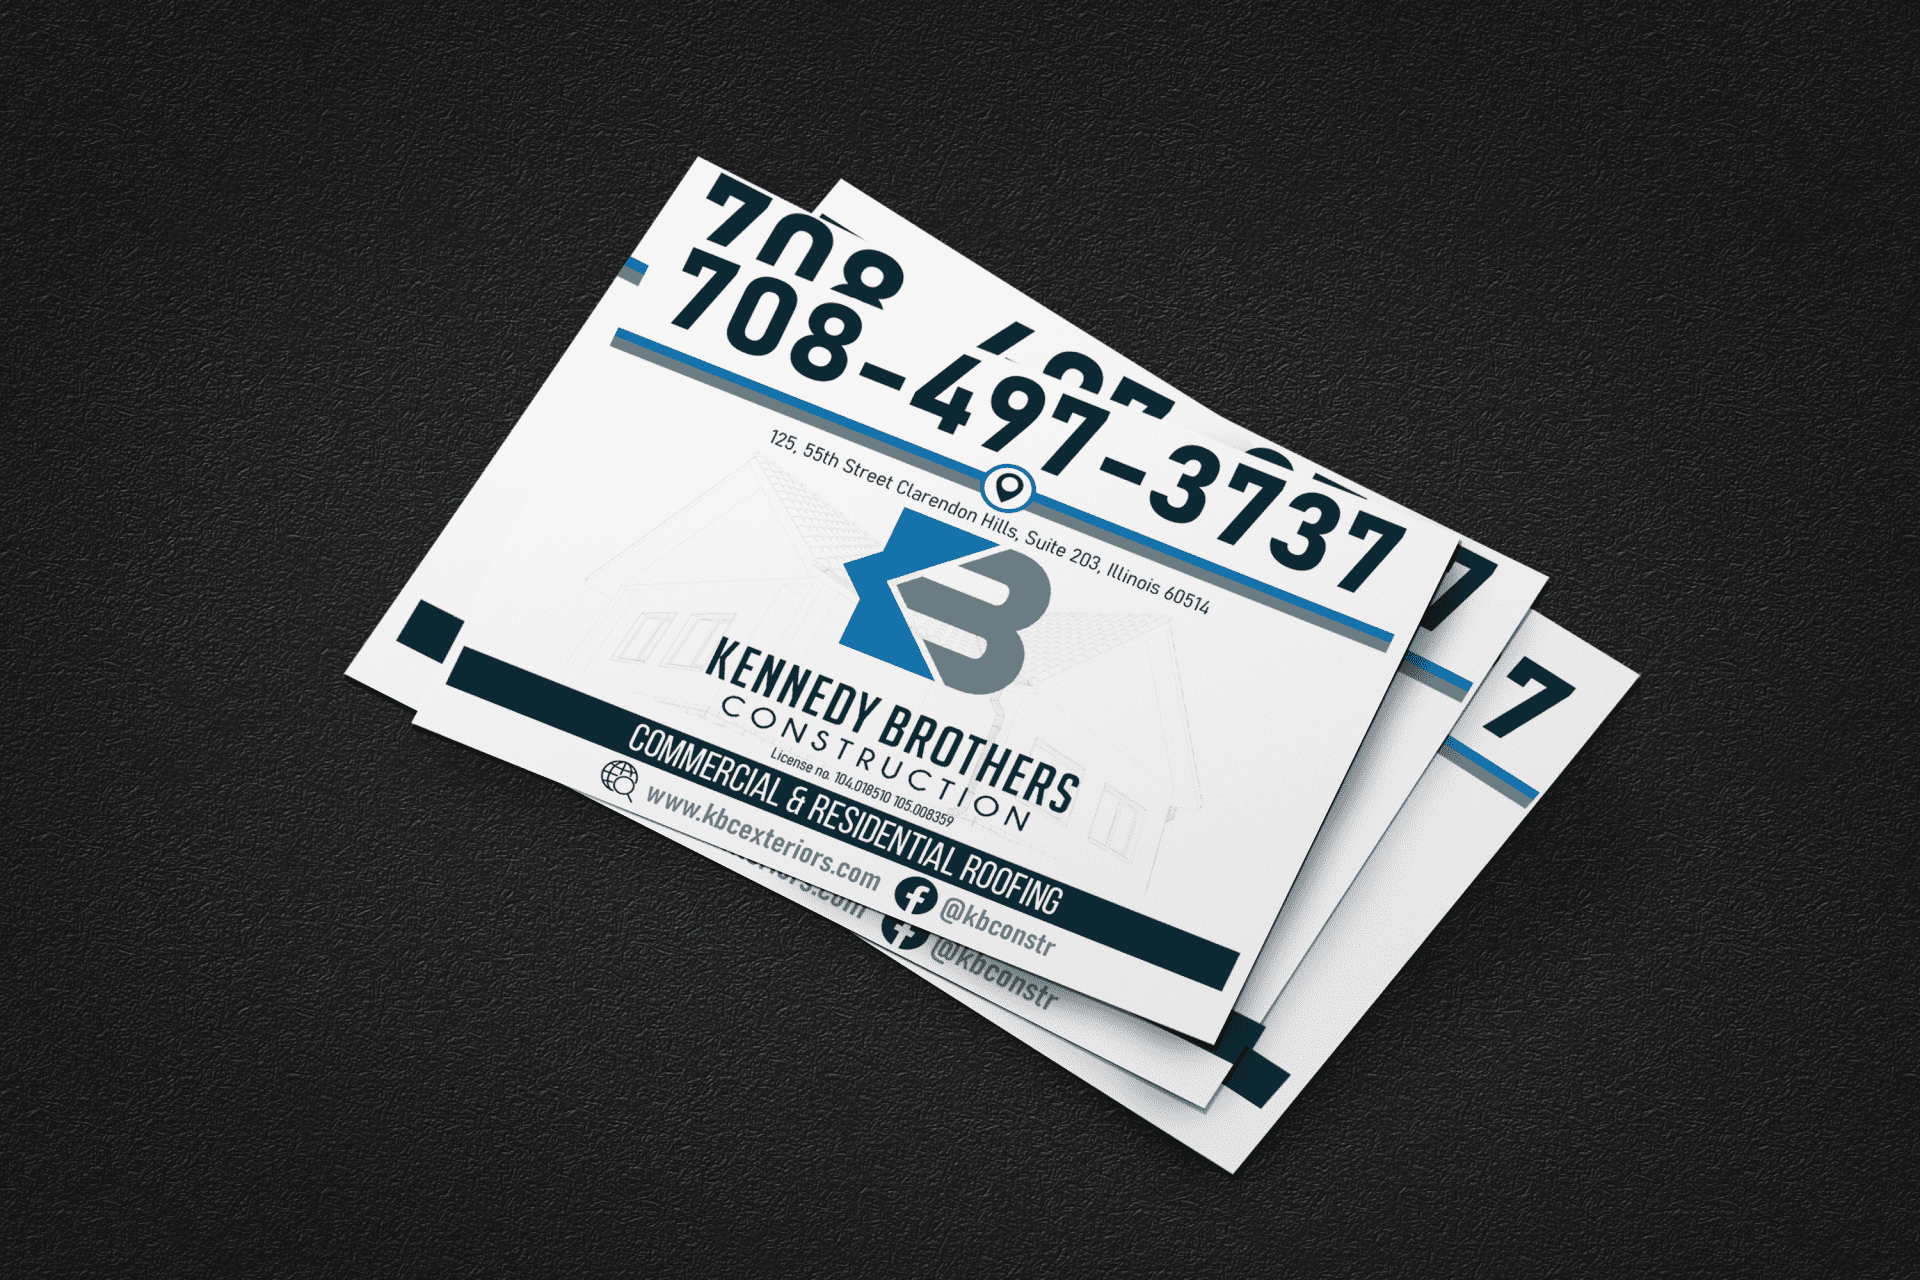 yard sign flyers for kbc construction